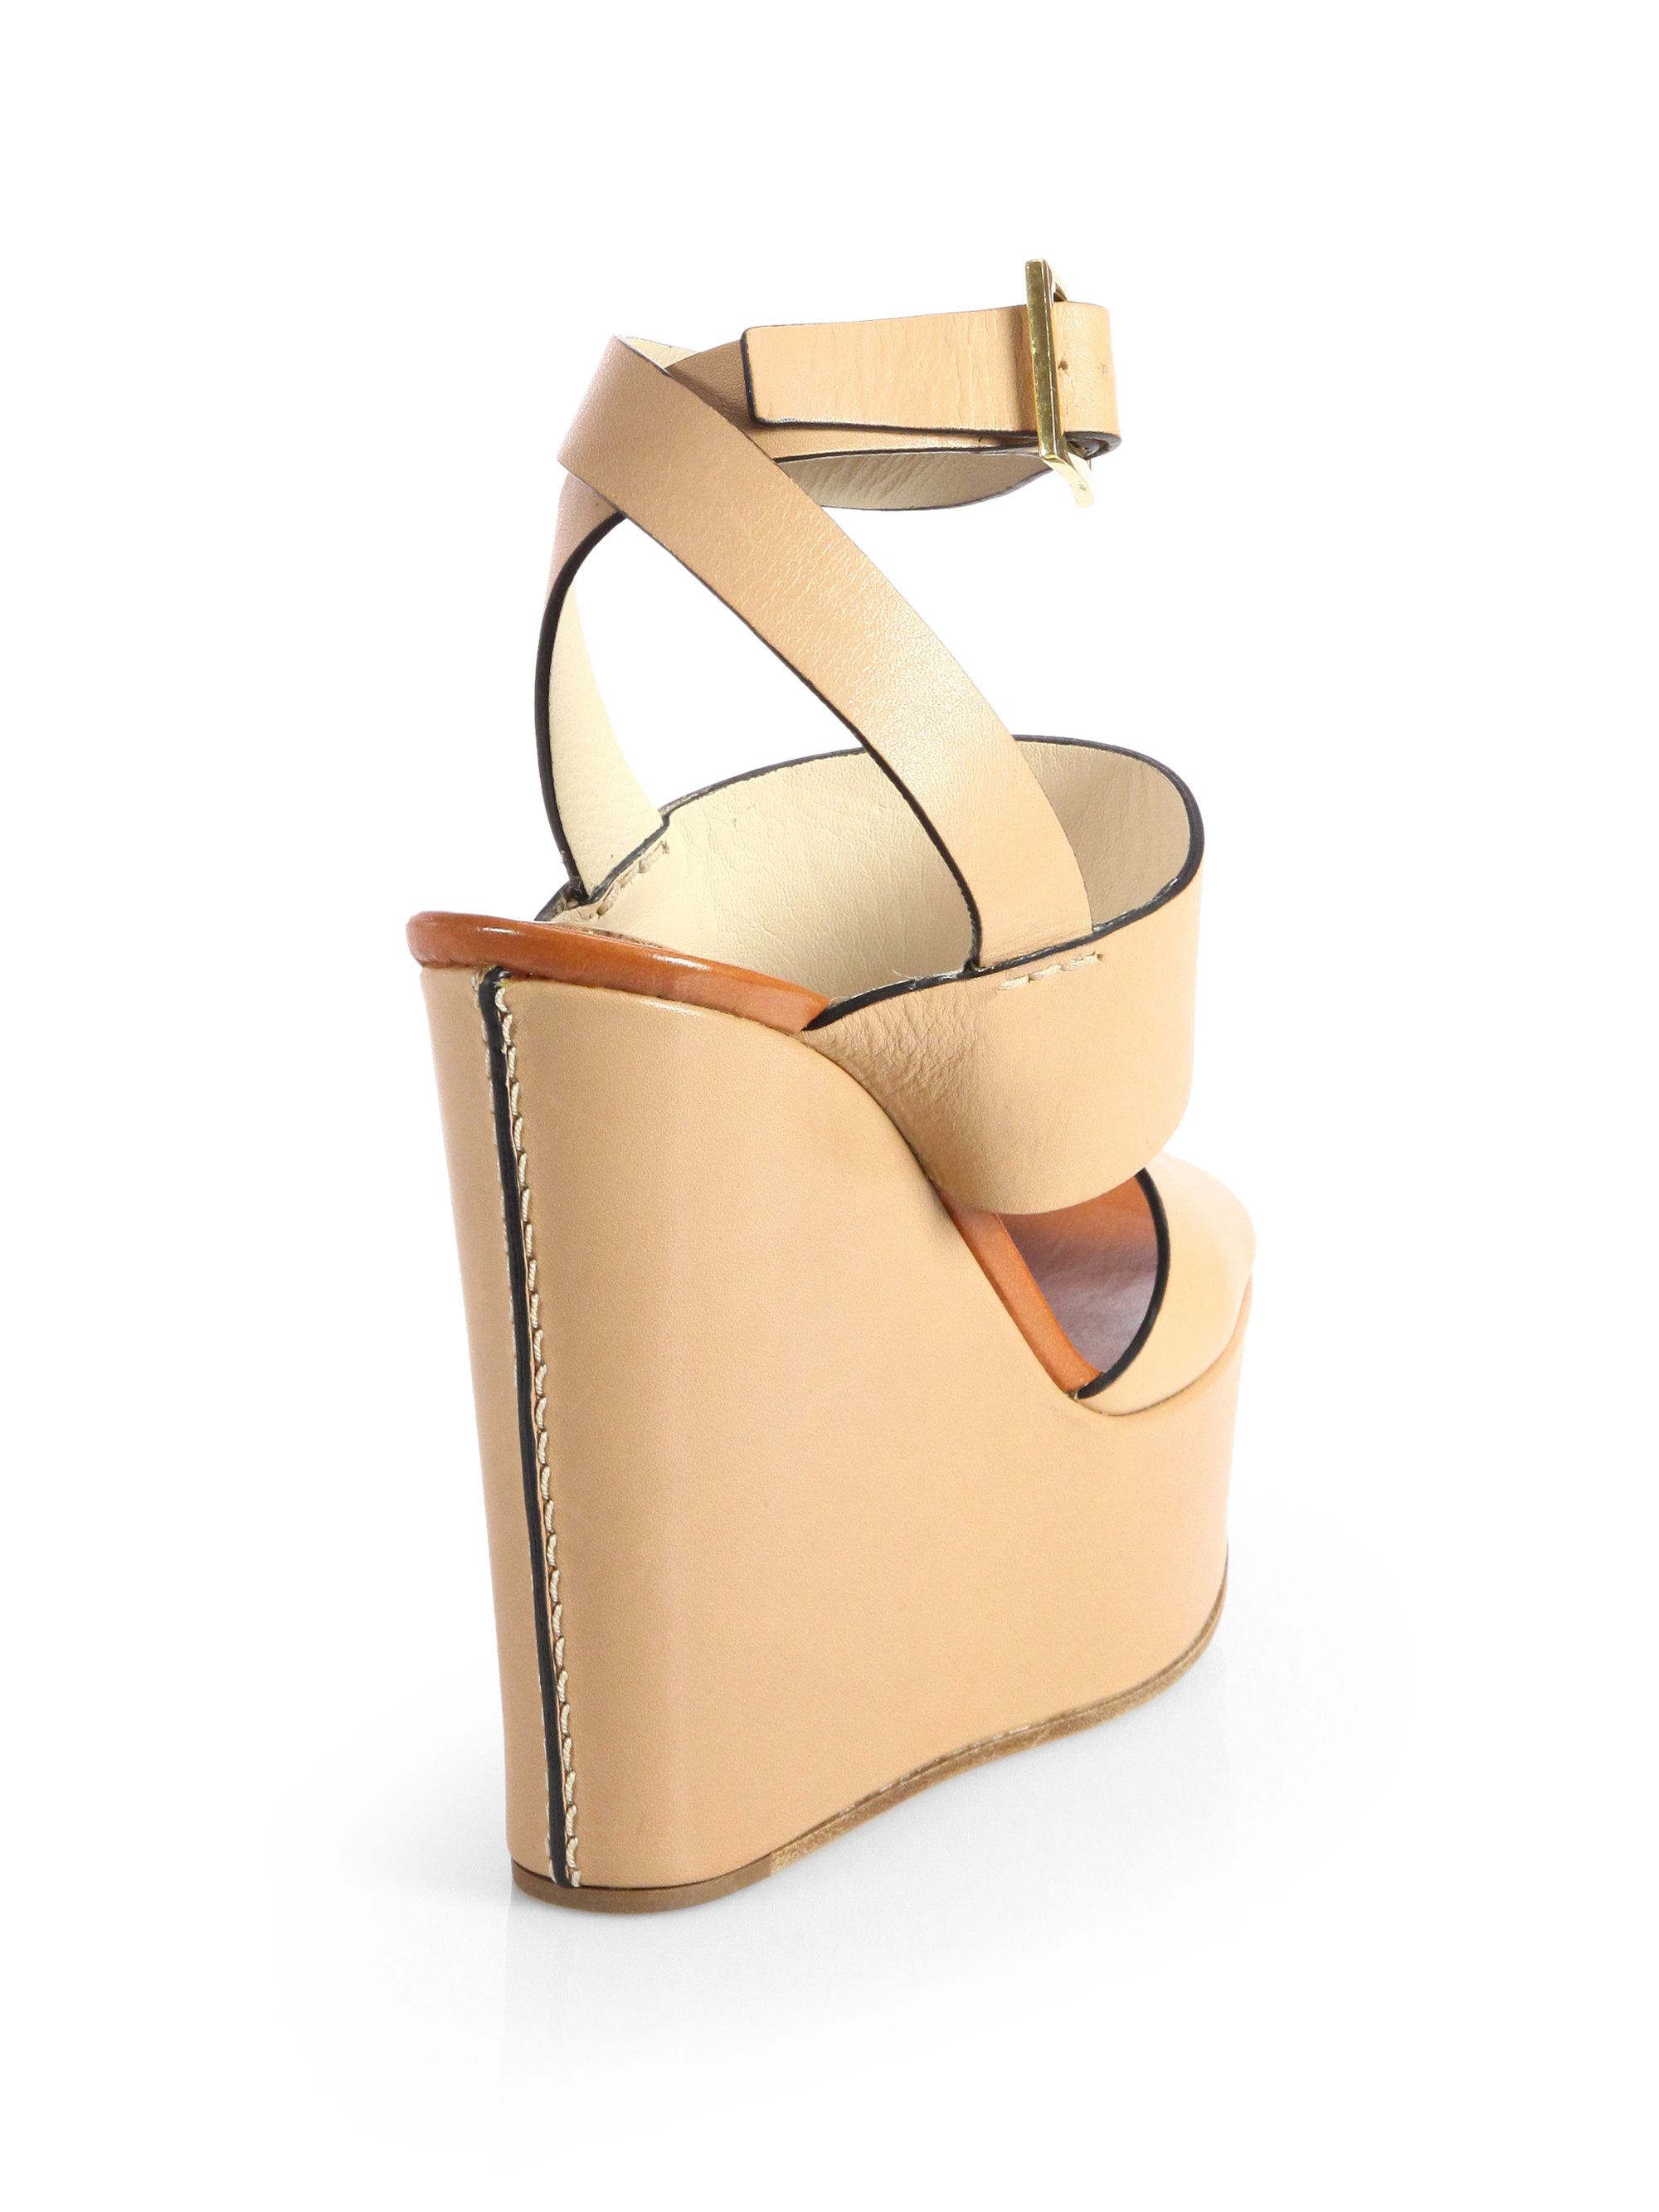 5c7abcd5b3722 Lyst - Chloé Leather Anklestrap Wedge Sandals in Natural